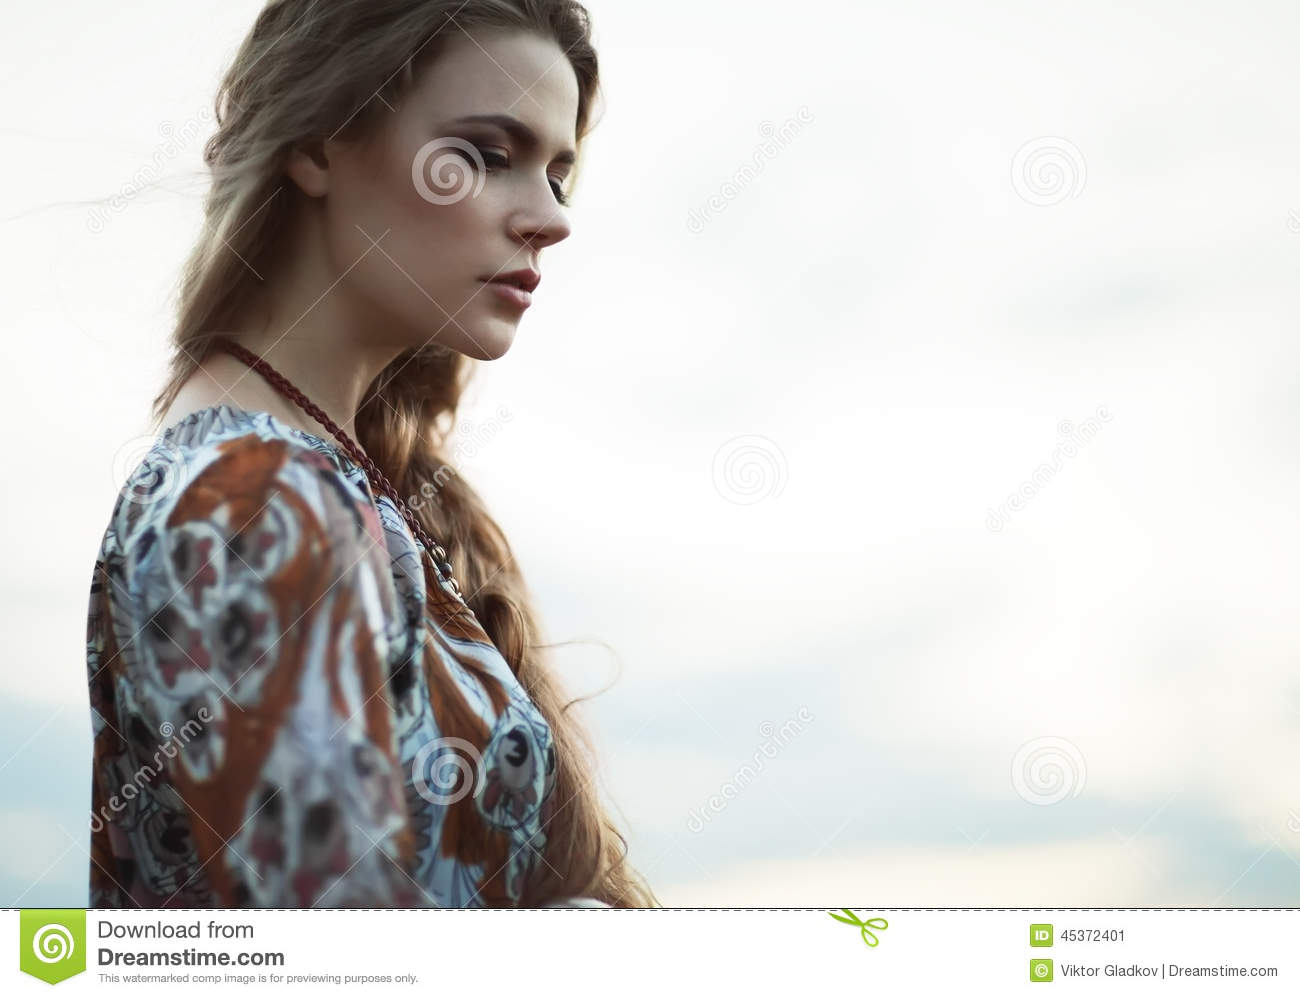 Fille hippie de portrait dramatique